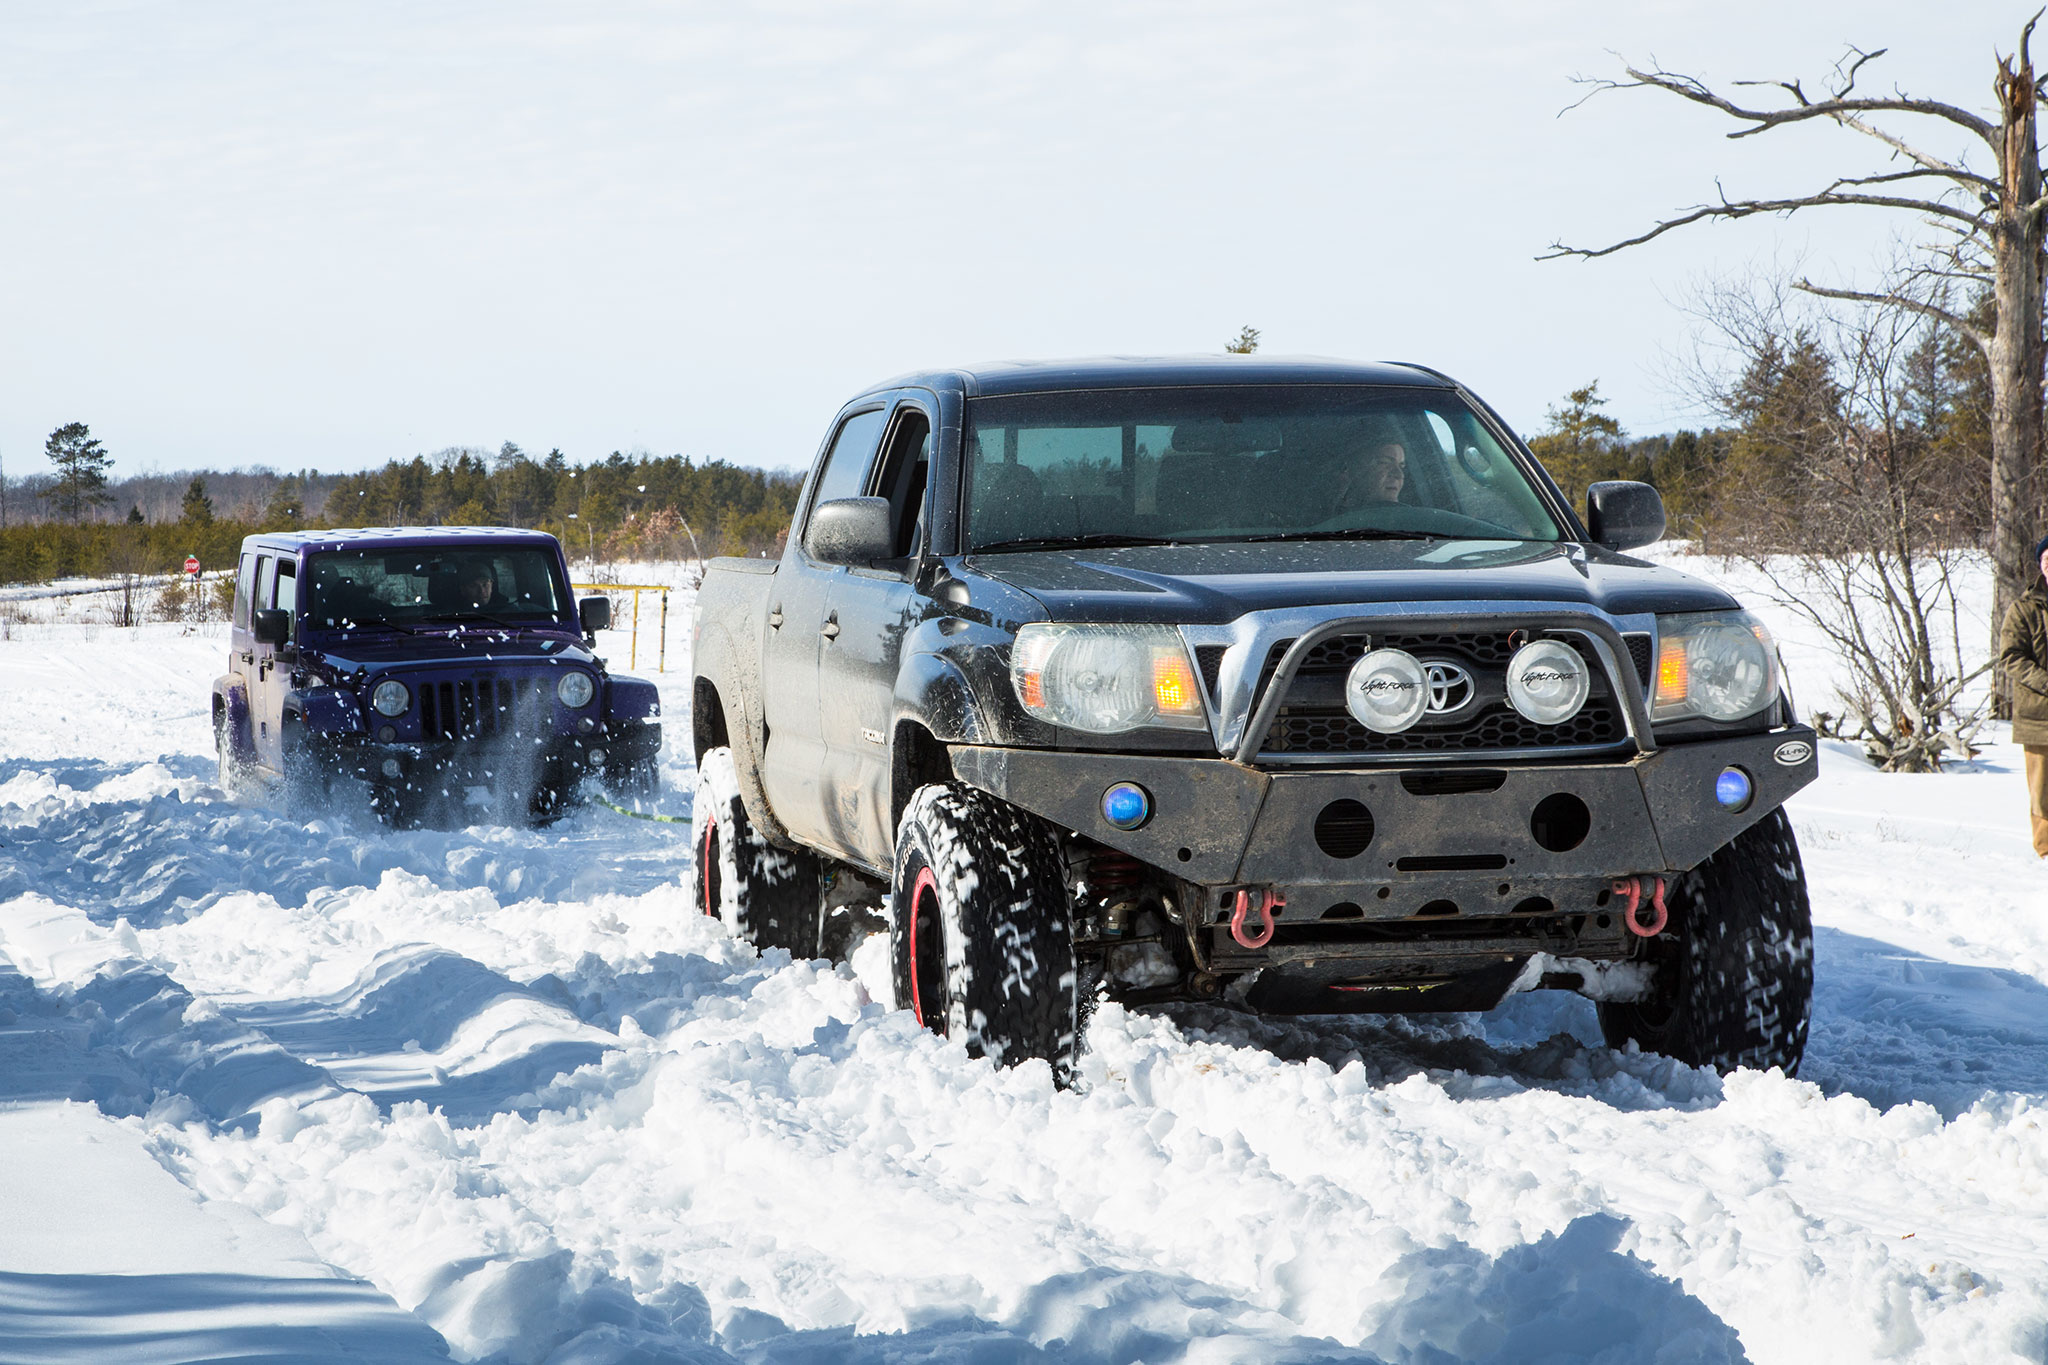 Jeep Wrangler Backcountry Towed In Snow on Jeep Wrangler 4 0 Engine